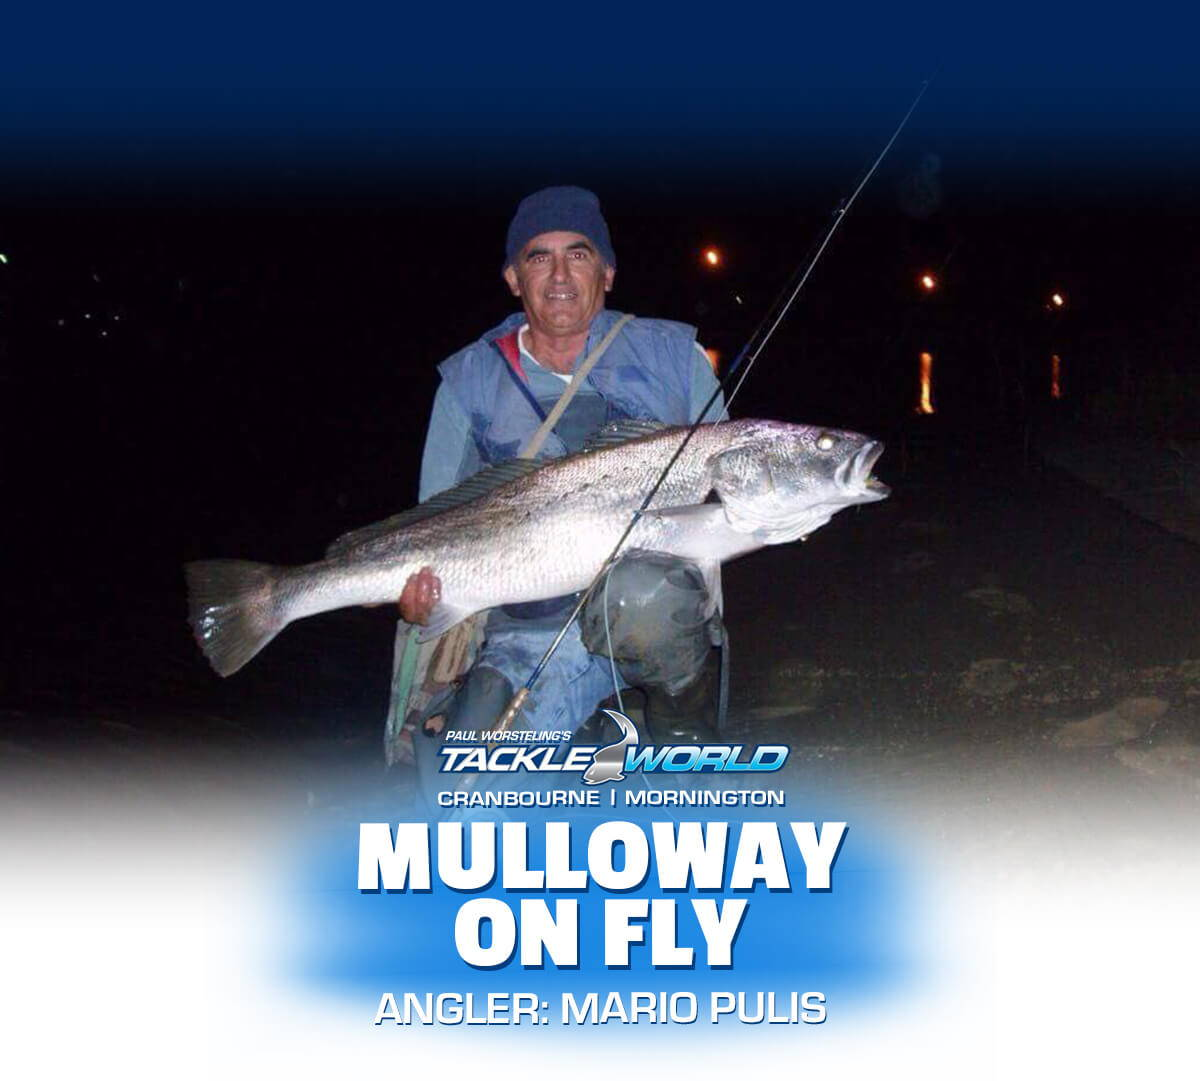 Mulloway on fly caught by Mario Pulis